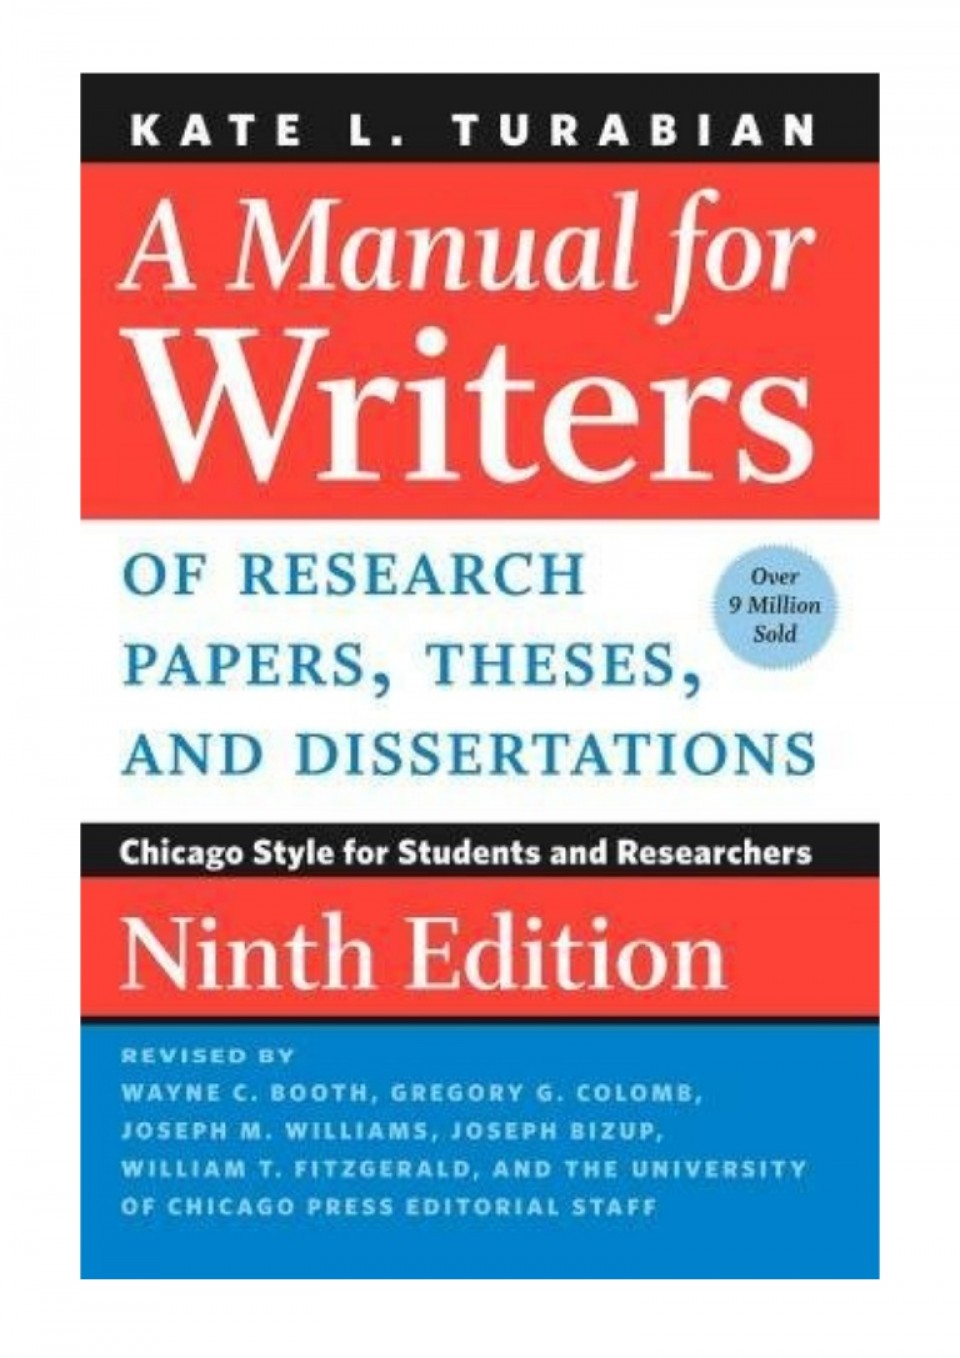 008 Research Paper 022643057x Amanualforwritersofresearchpapersthesesanddissertationsnintheditionbykatel Thumbnail Manual For Writers Of Papers Theses And Amazing A Dissertations Turabian Pdf 960